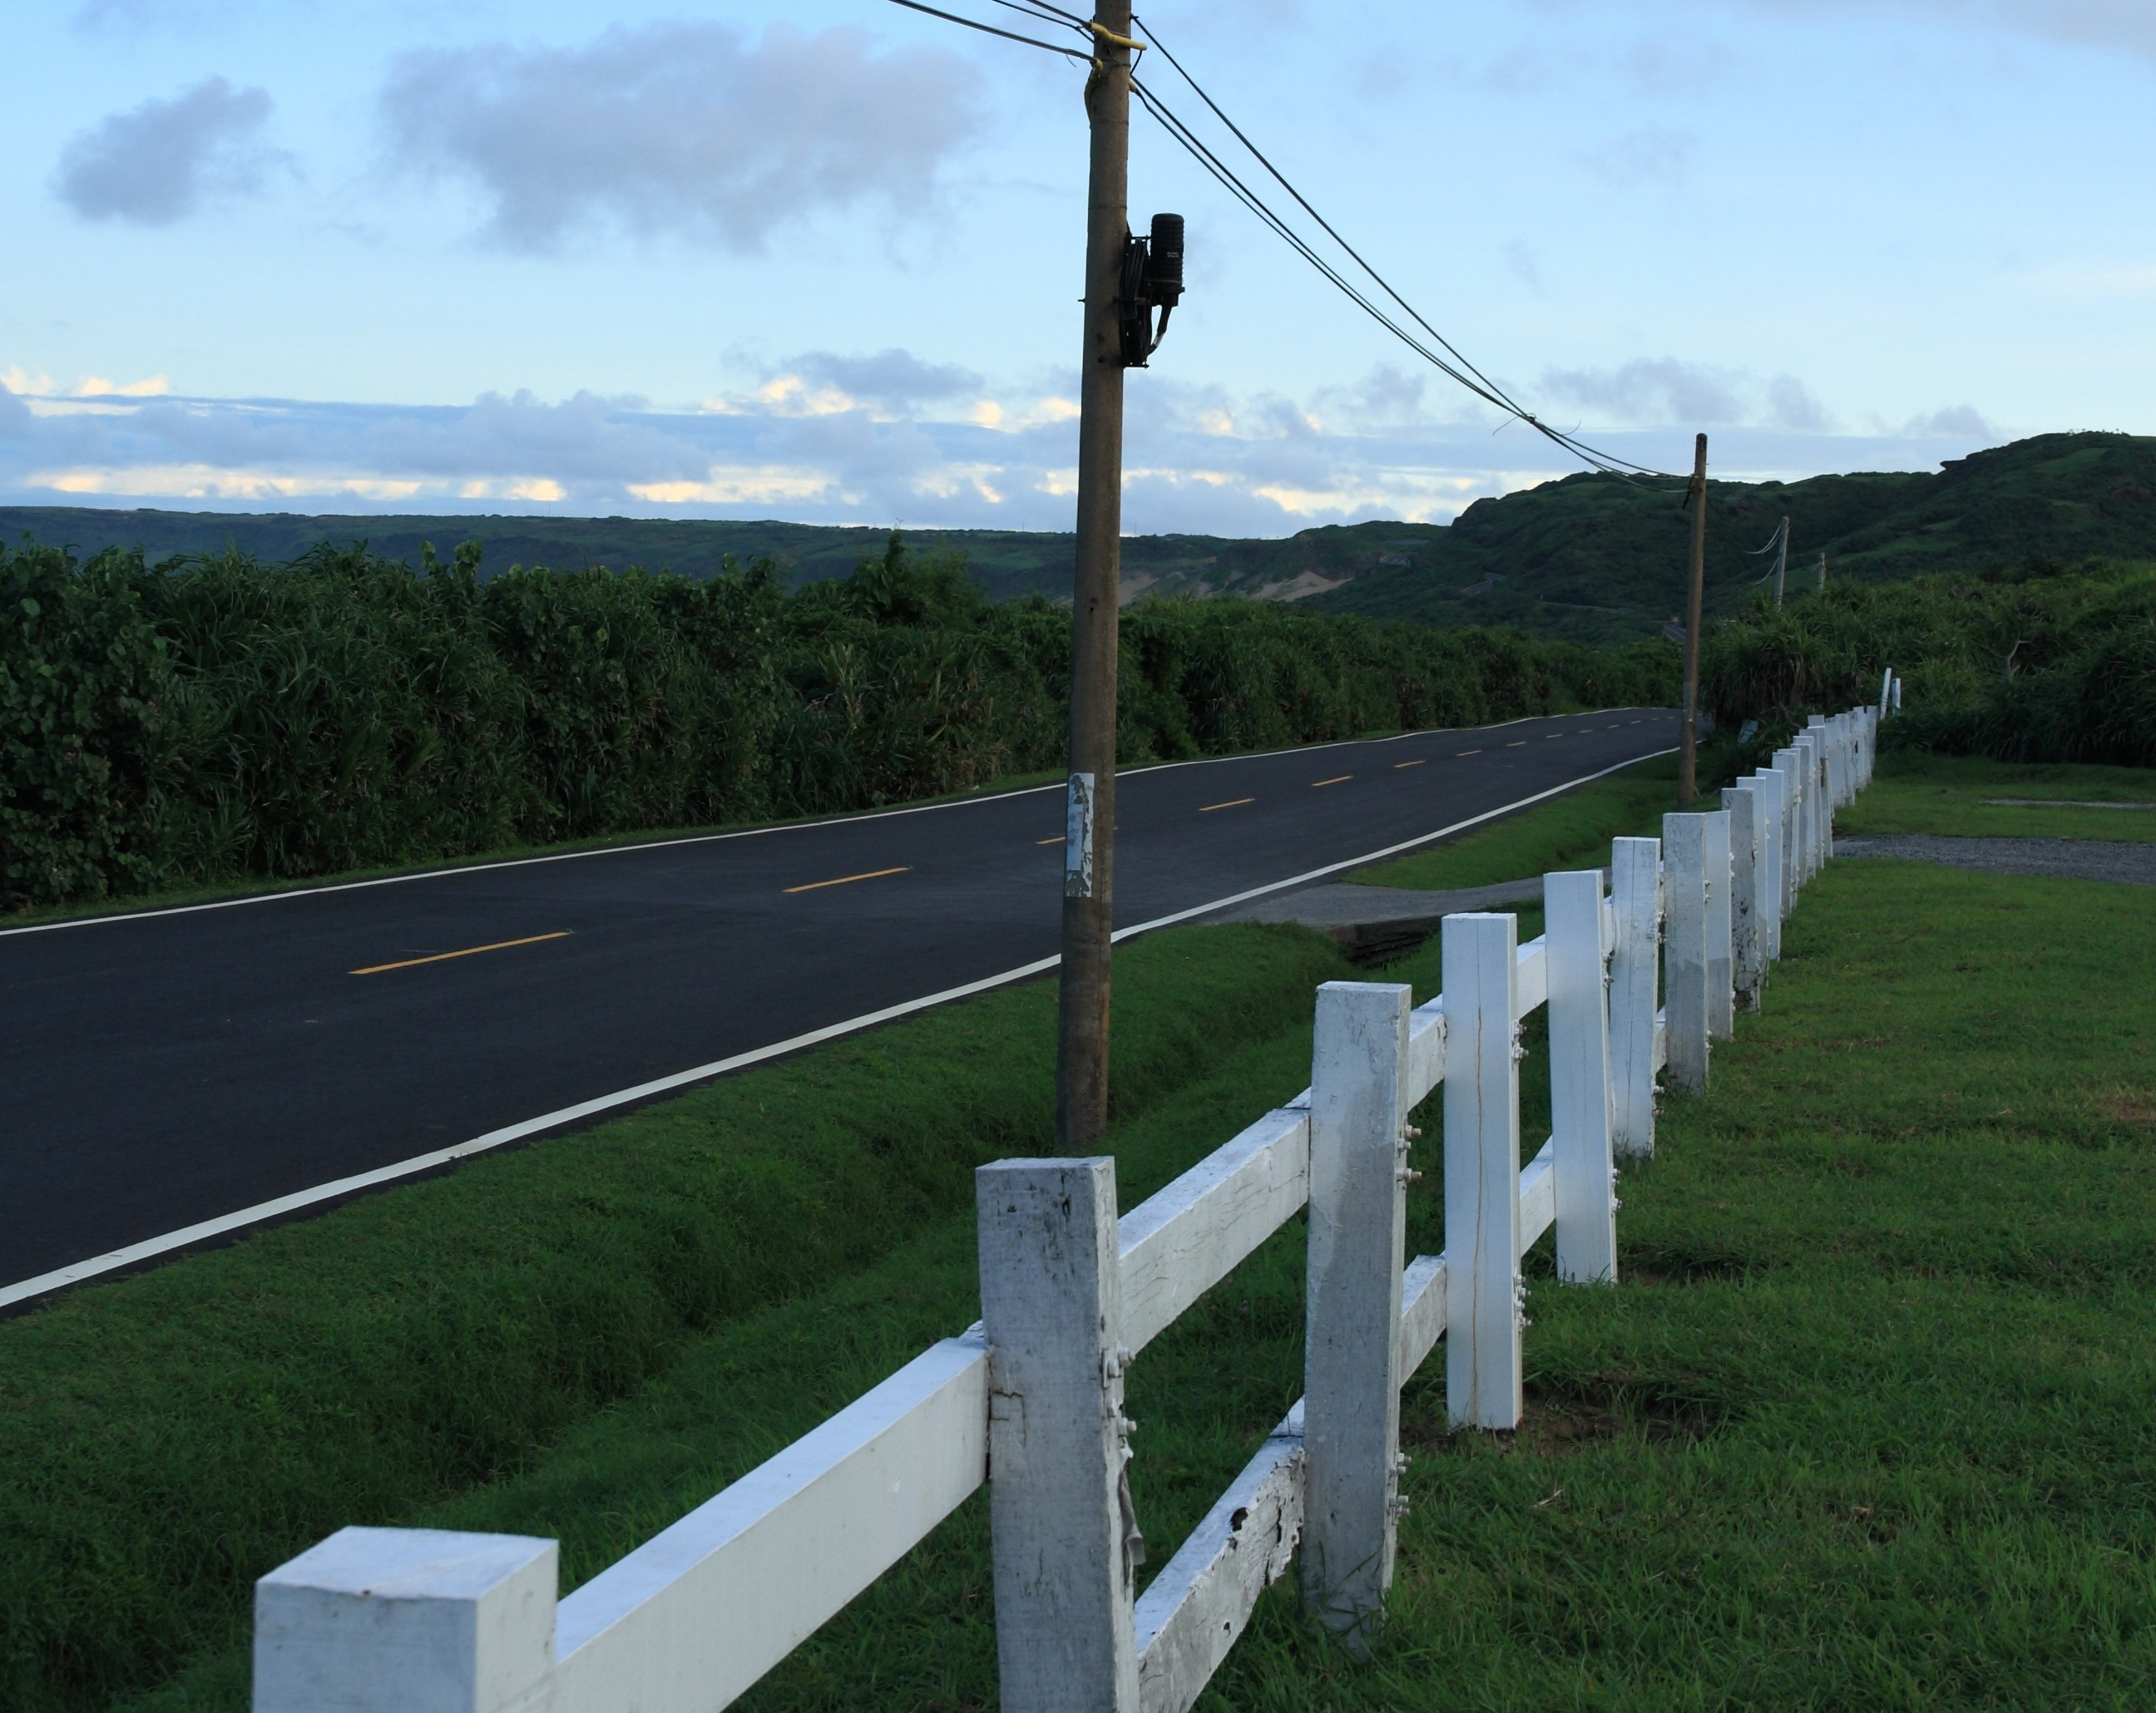 Hillsborough How To Fix a Fence Post